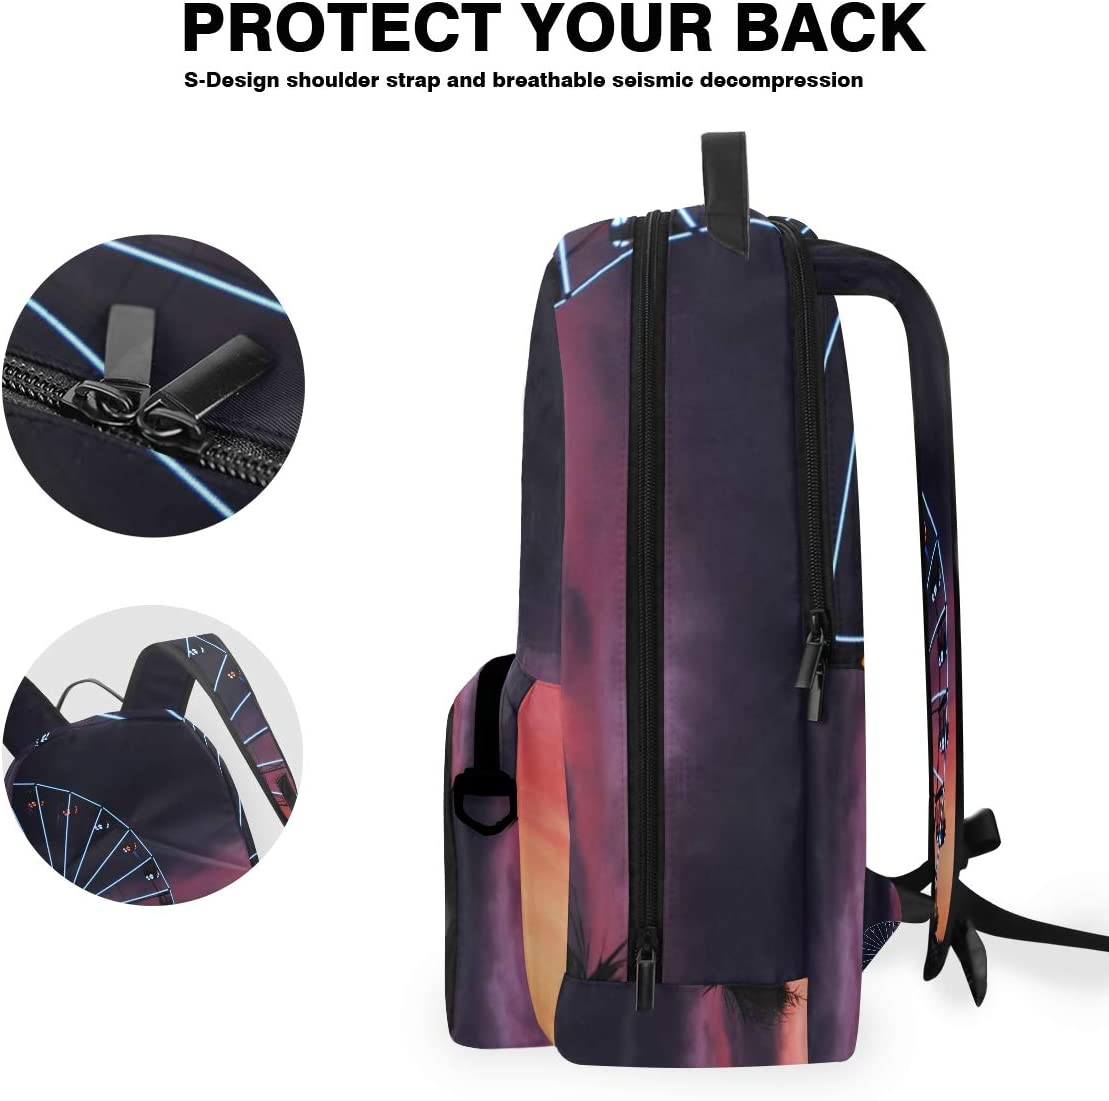 Stylish Laptop Backpack Travel Backpack with Removable Sling Bag Lit-Up Ferris Wheel